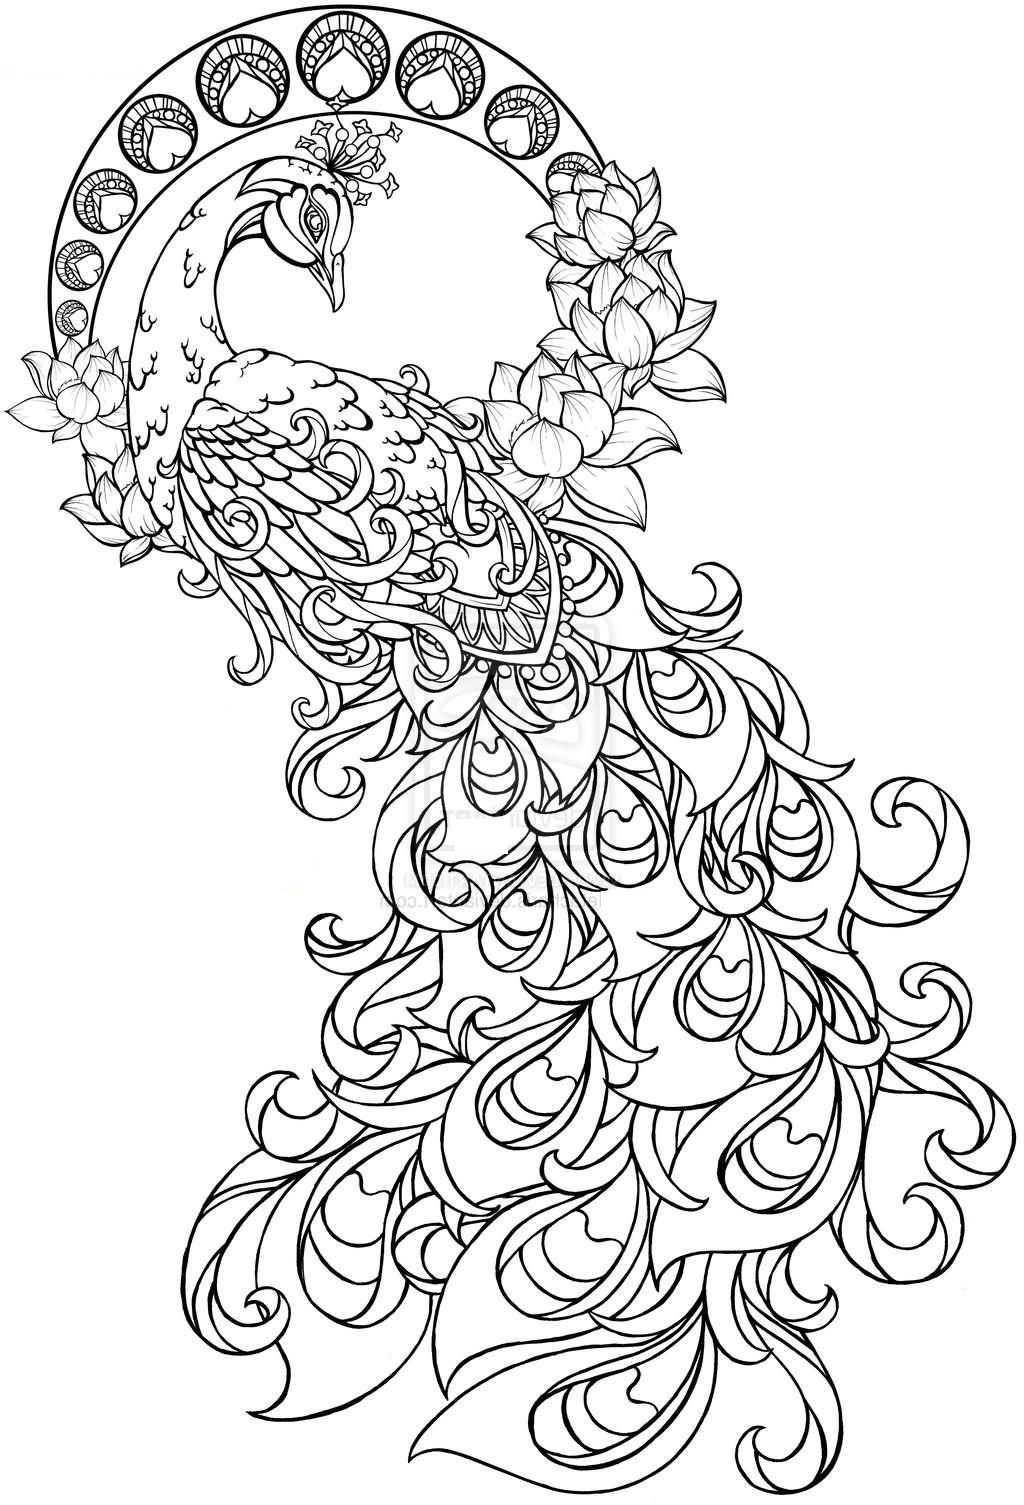 This Beautiful Large Peacock Paisley Pattern Tattoo Design Is Aimed At Younger Kids With Its